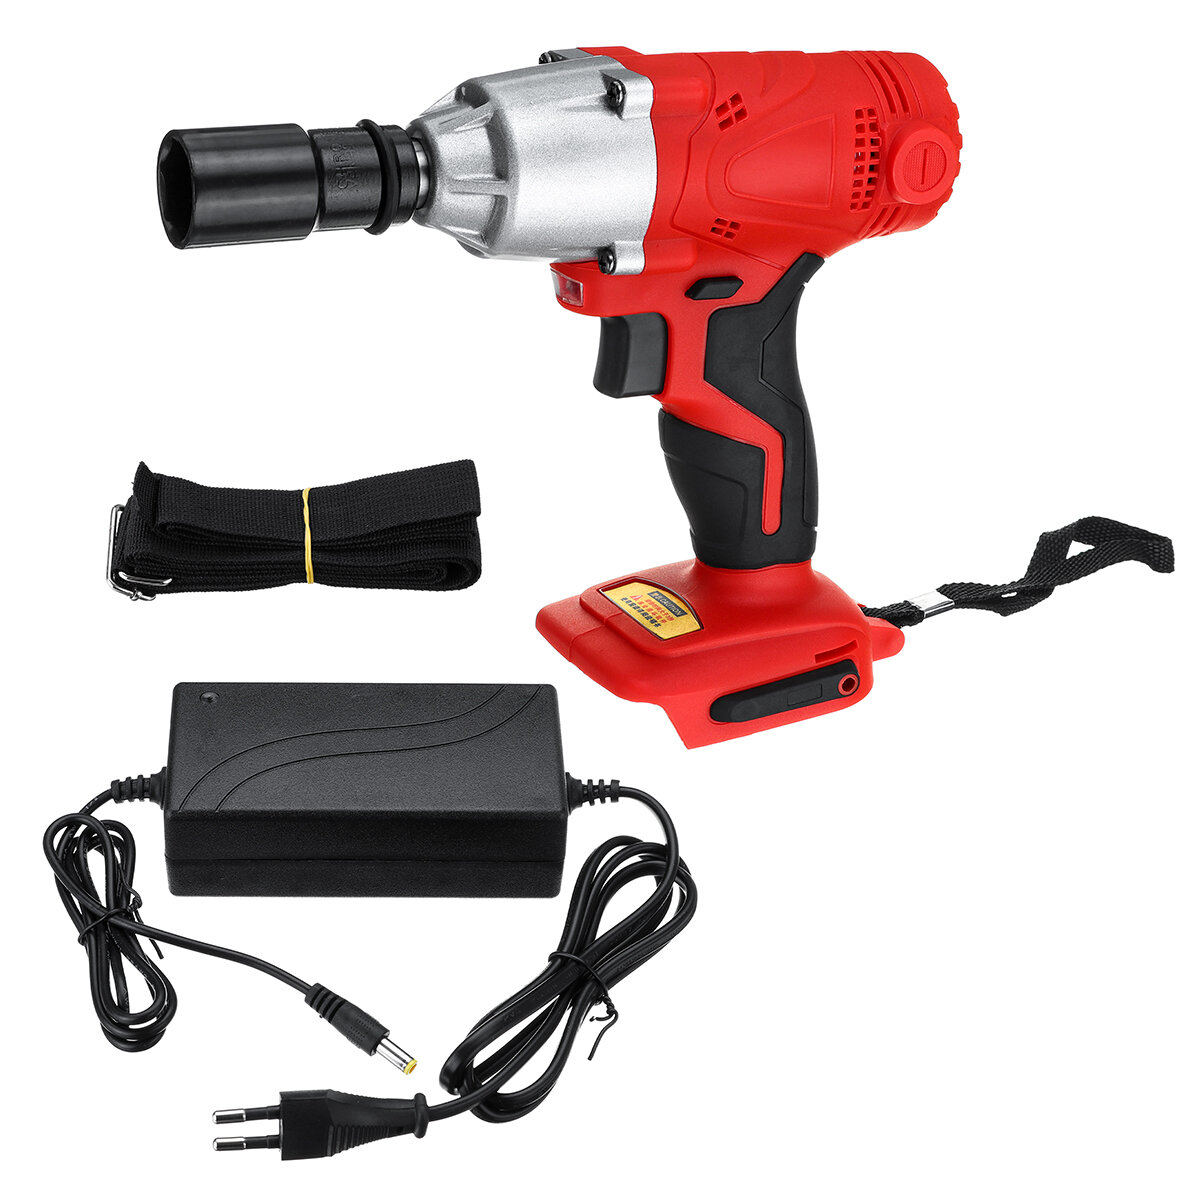 180V-240V Cordless LED Light Impact Wrench 50Hz 350 Nm Waterproof Electric Wrench Adapted To 18V Makita Battery